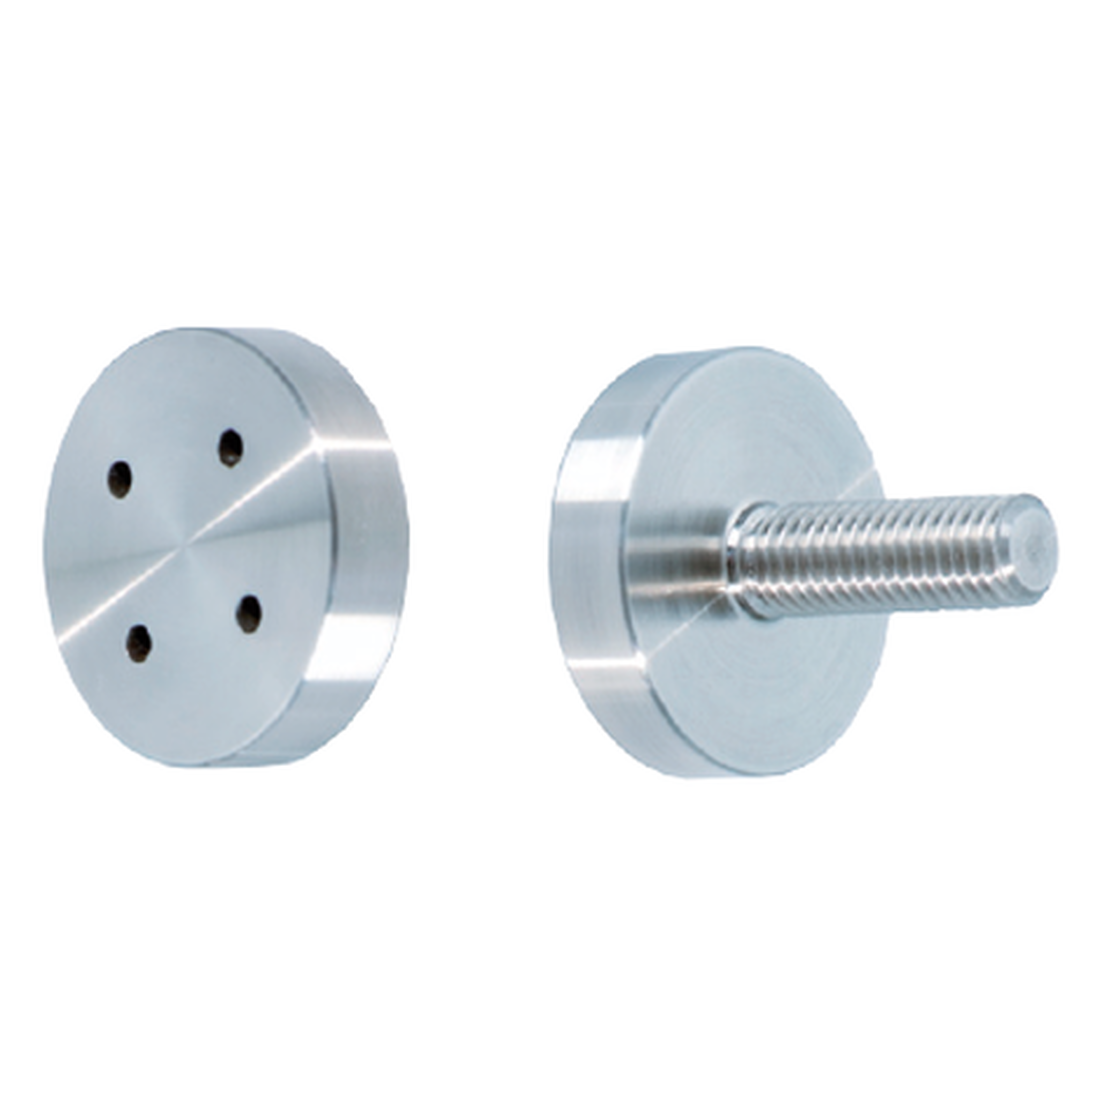 DECORATIVE SCREW WITH 4-HOLE OPTIC, ø 30MM